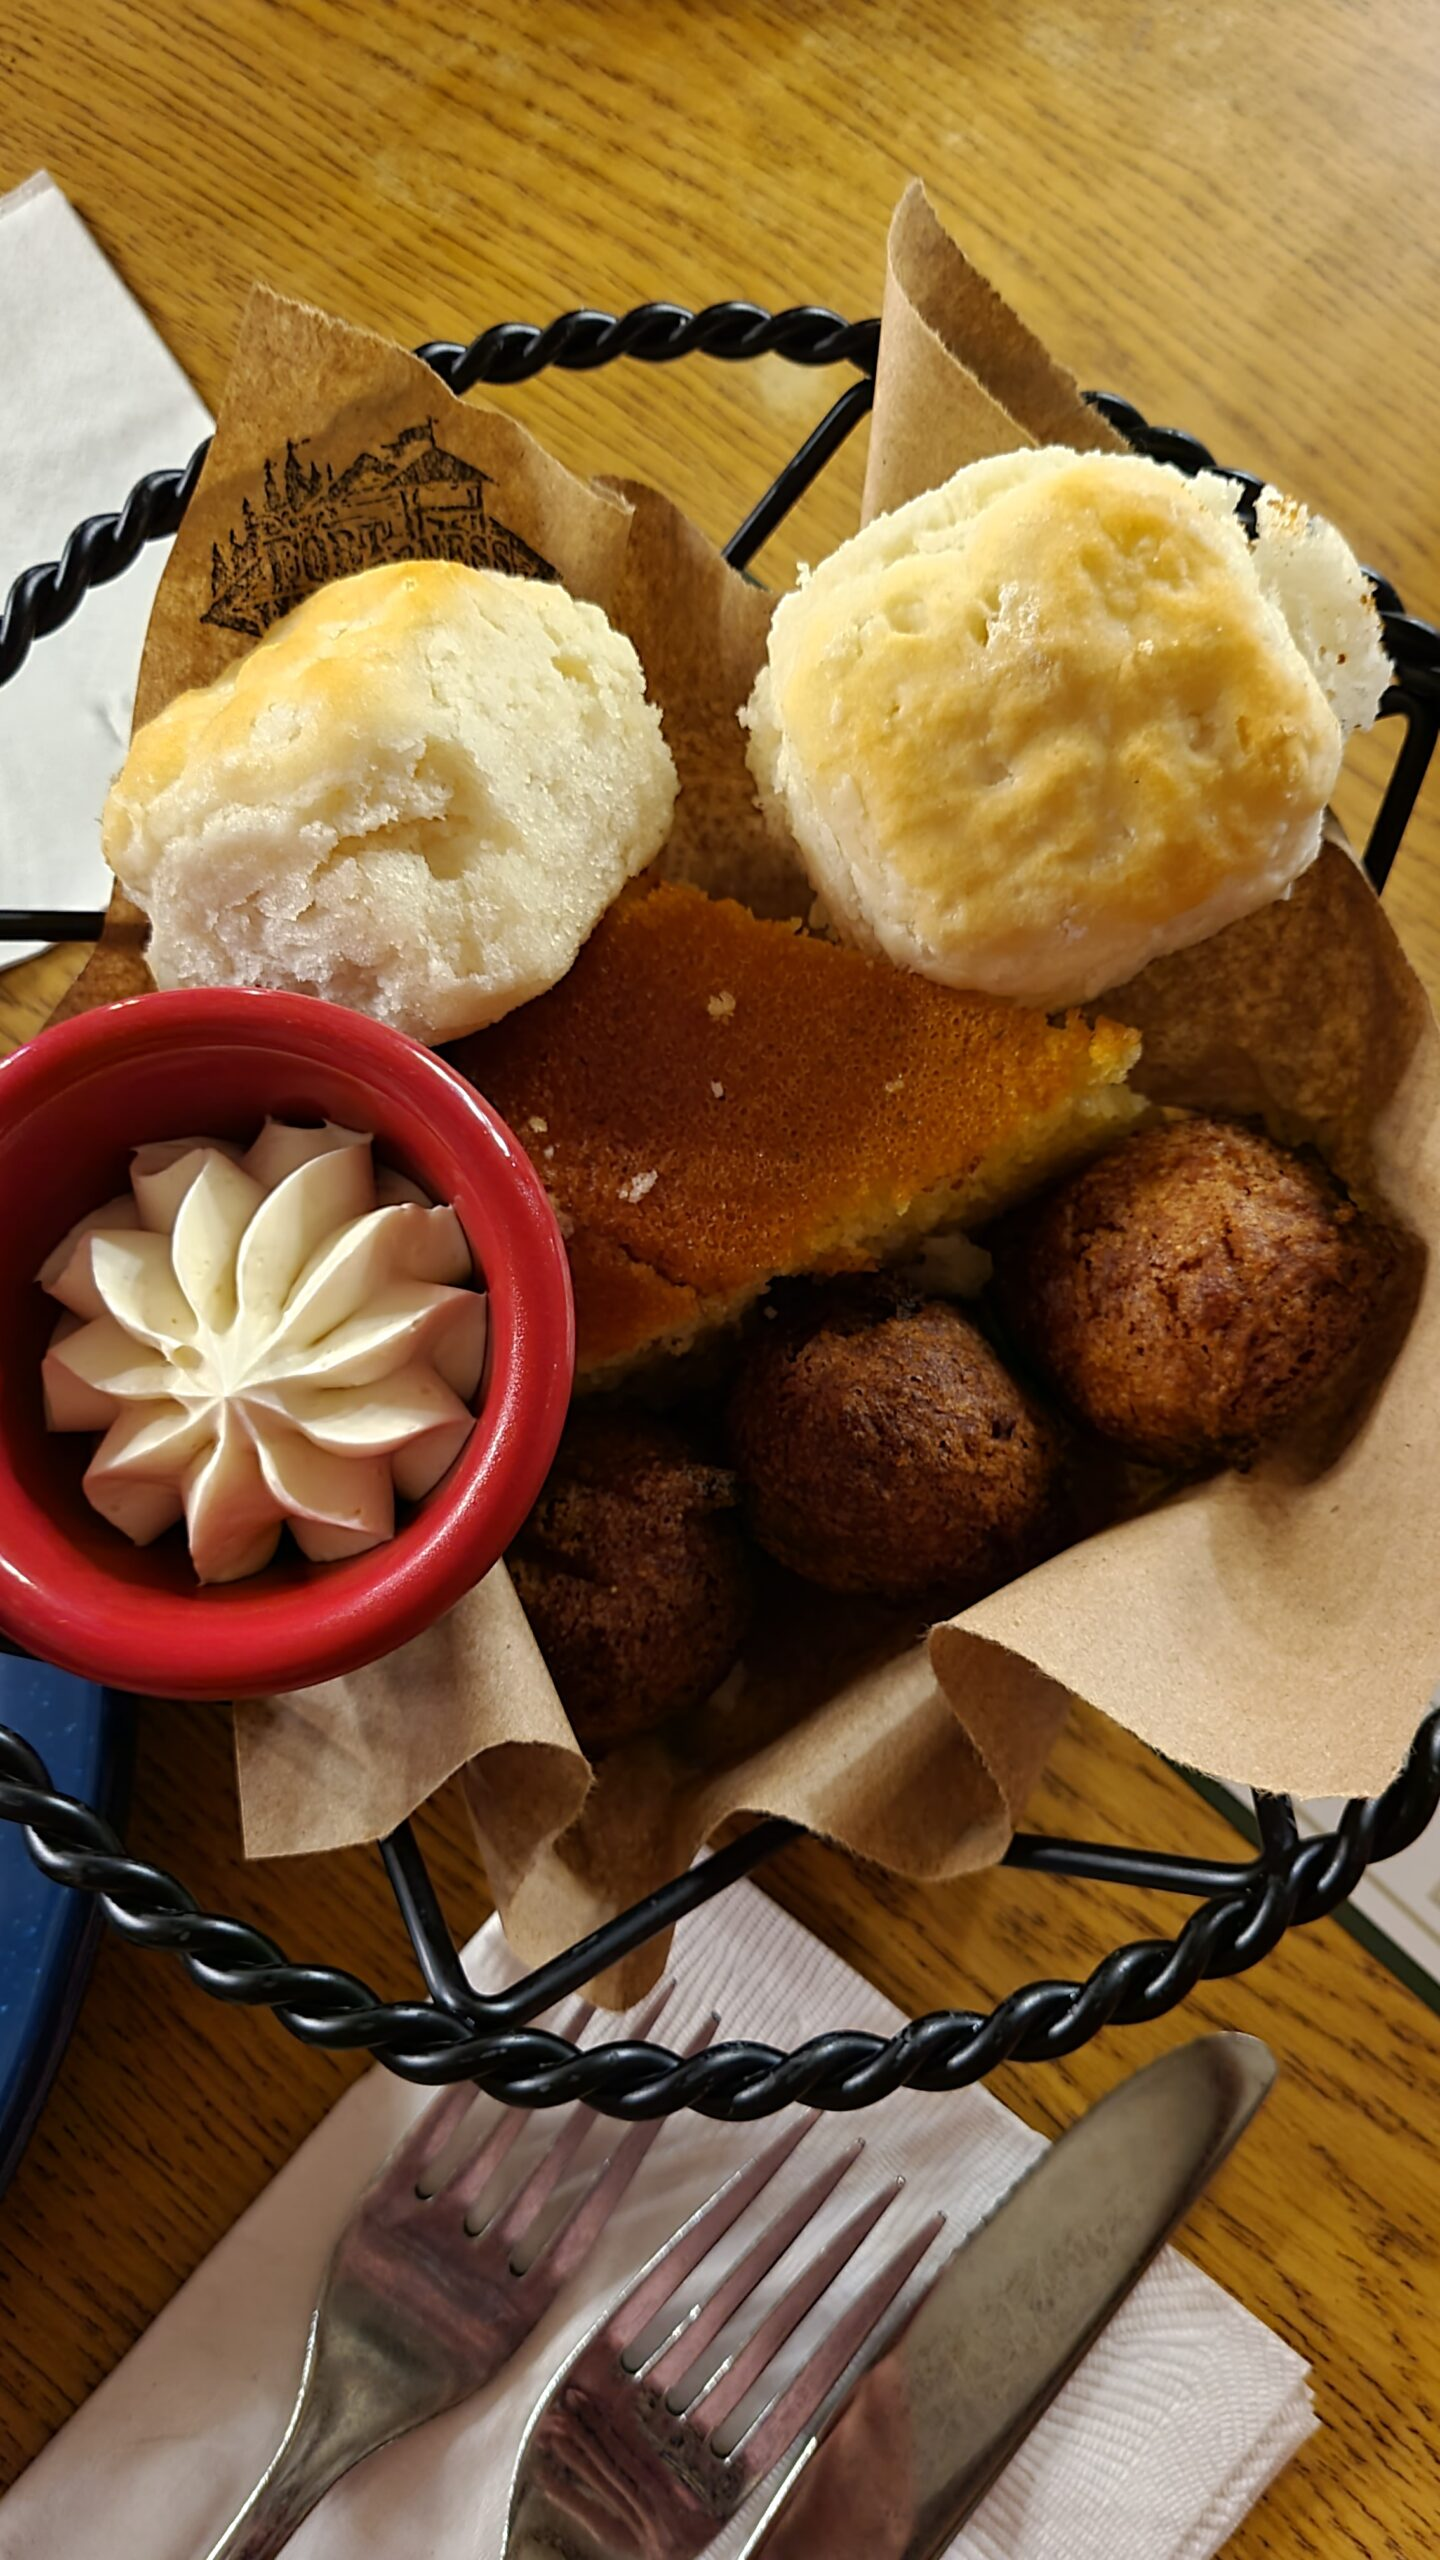 Dinner at the Reopening of Trail's End in Disney's Ft. Wilderness is a great value with good food 1